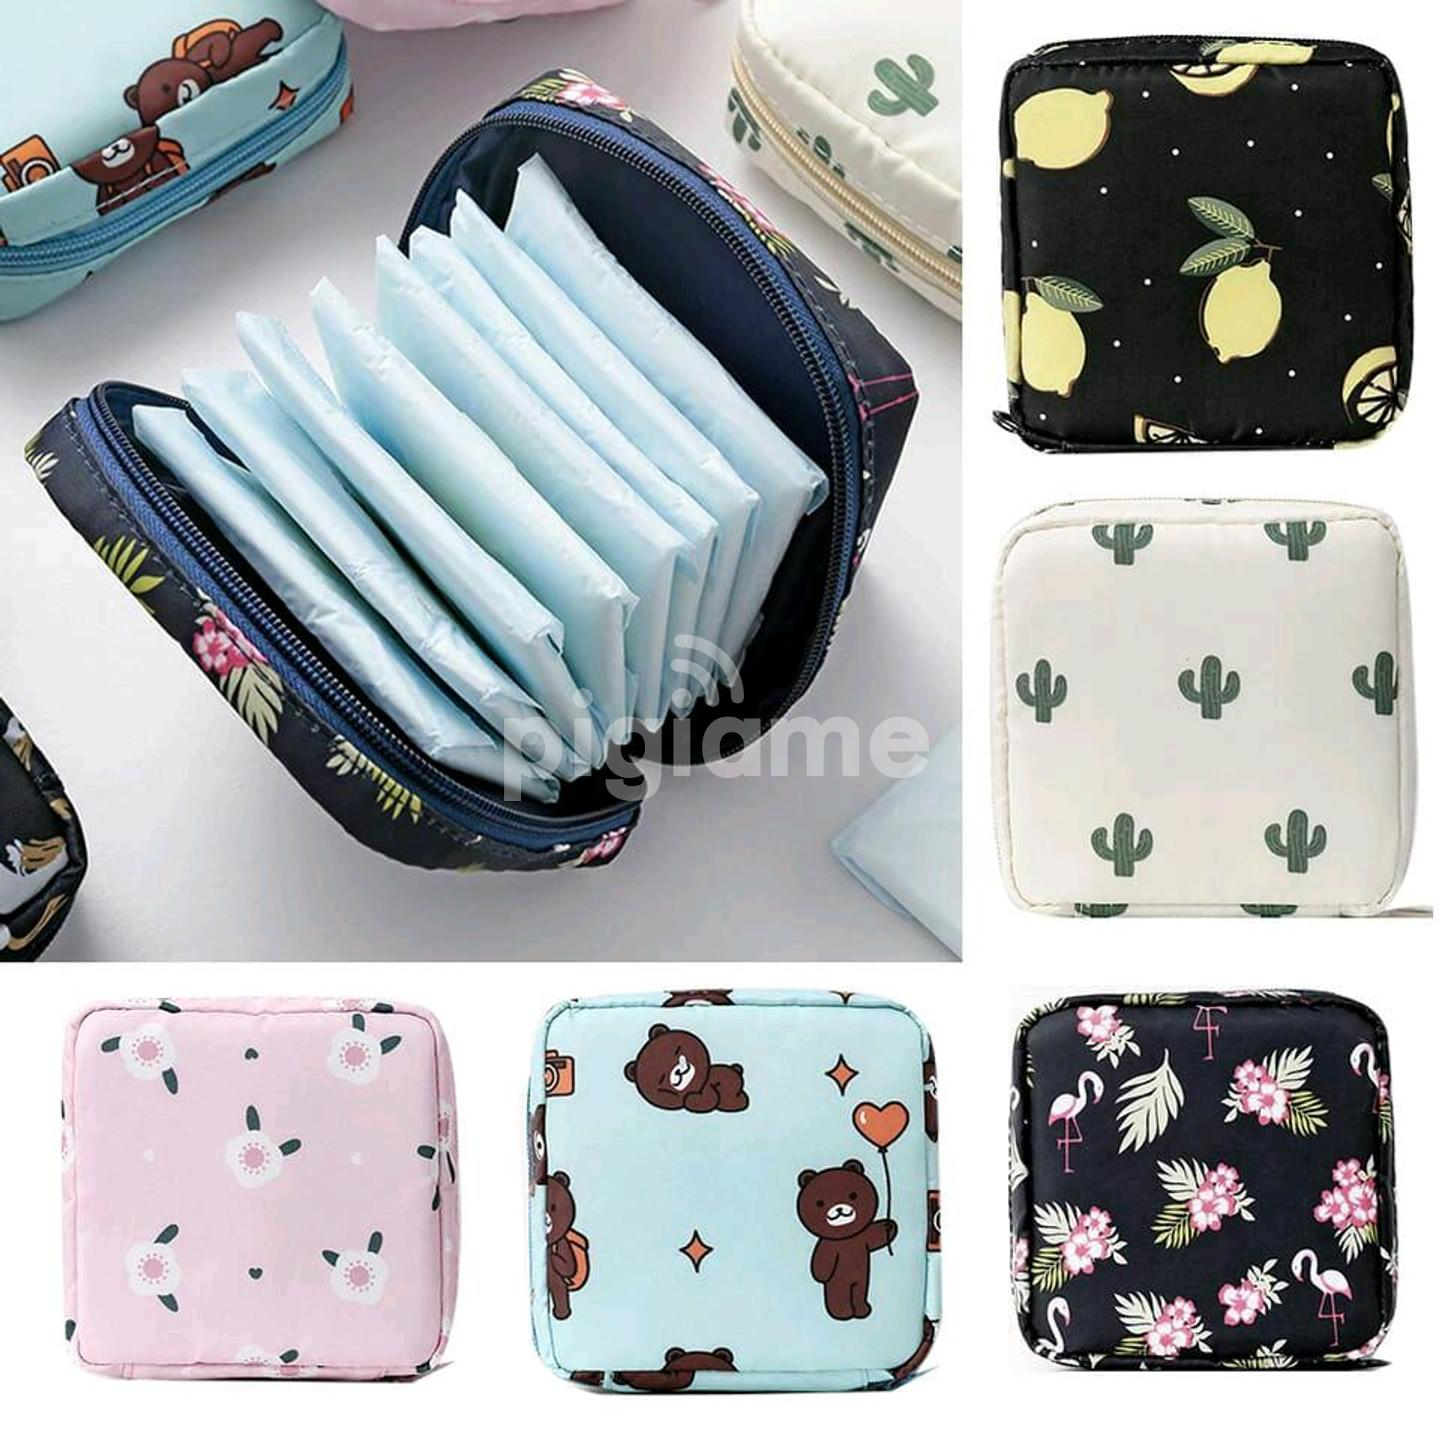 Sanitary Pads Pouch In Nairobi Pigiame